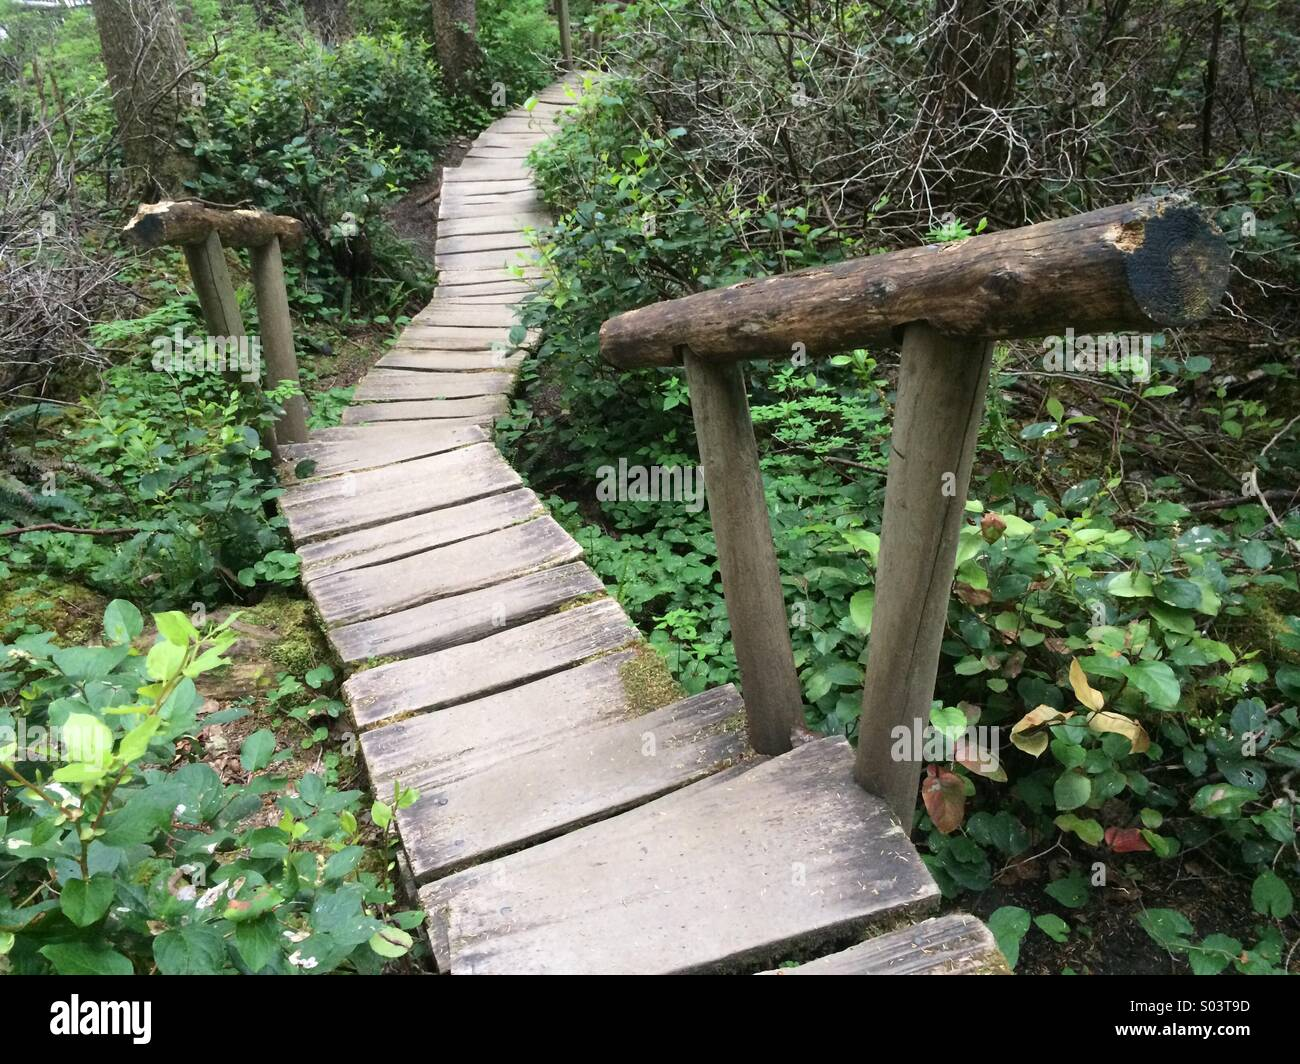 Cape Flattery trail, boardwalk, NW point for lower 48 states, Makah Tribal Lands, Neah Bay, Washington - Stock Image